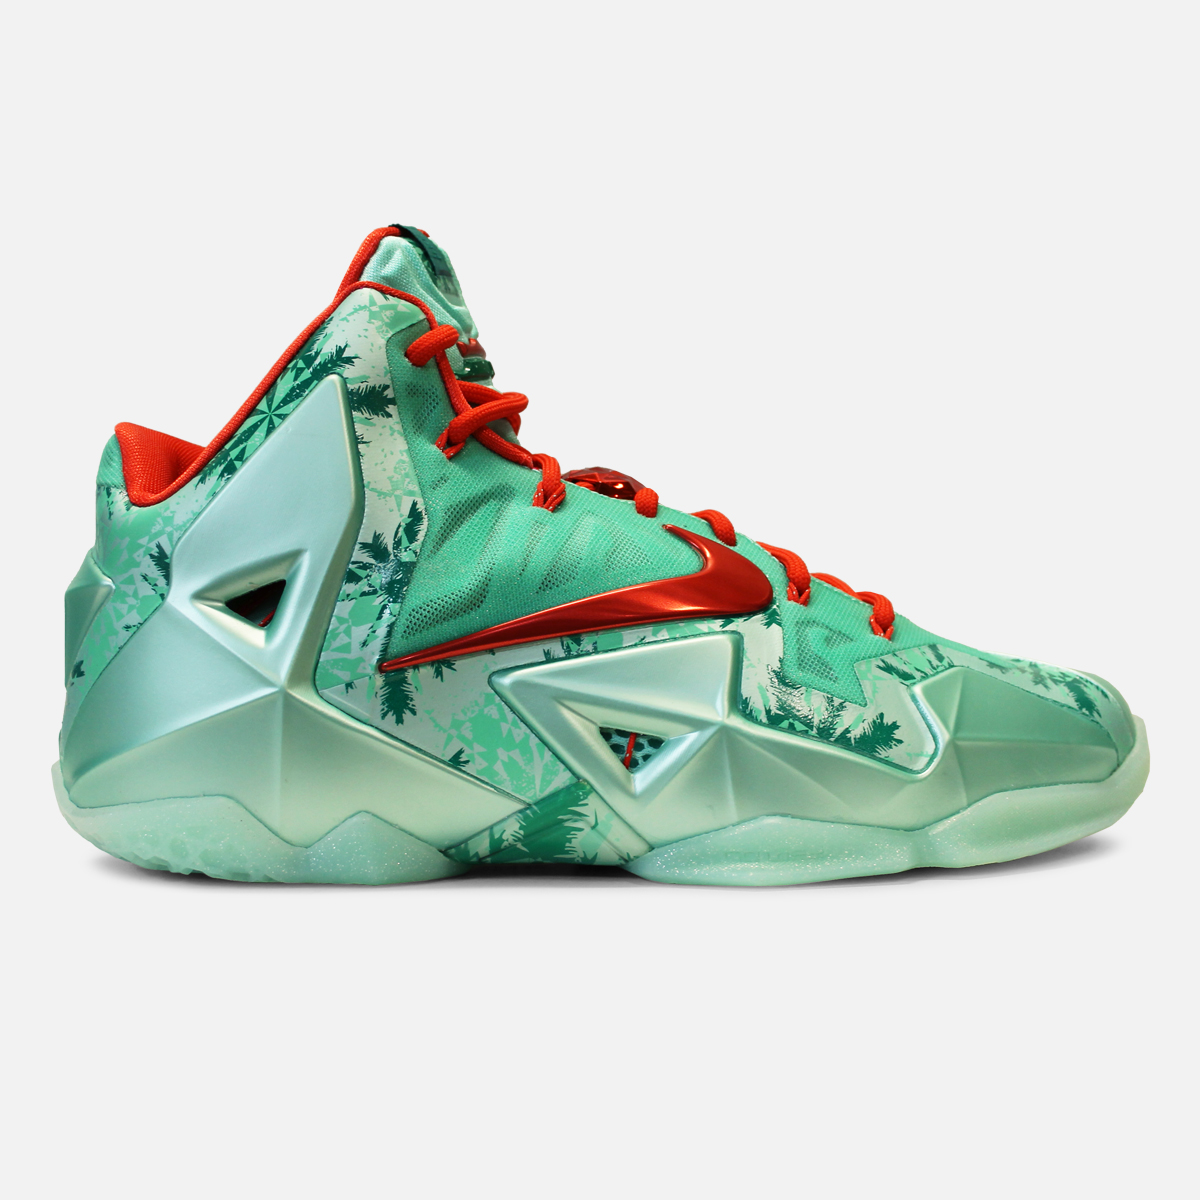 Nike LeBron 11 \'Christmas\' - Restock @Shoe_Palace - WearTesters